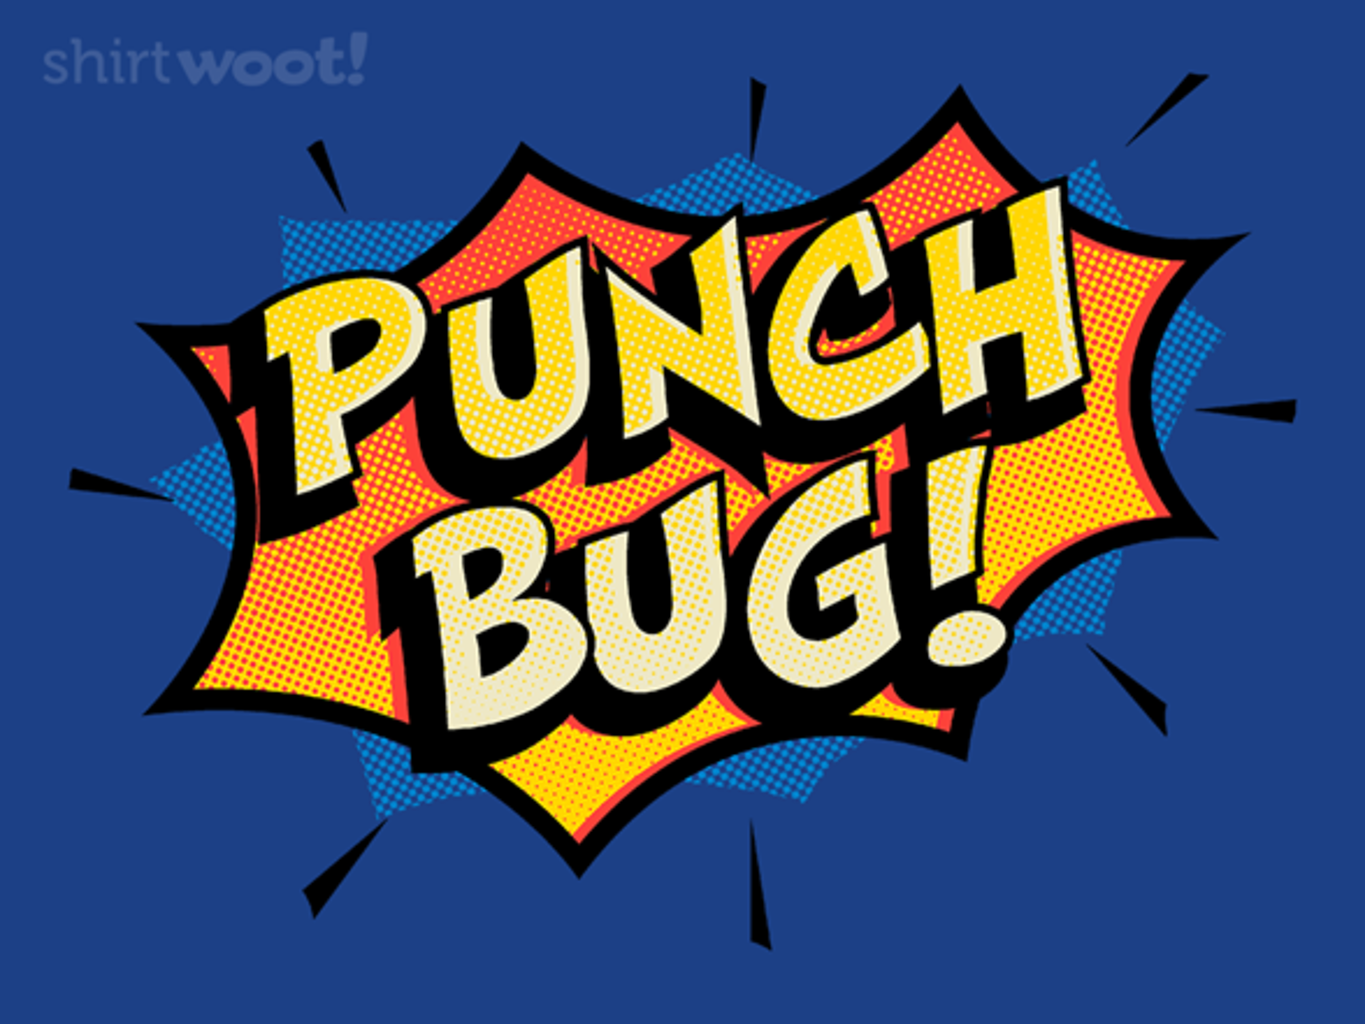 Woot!: Punch Bug!